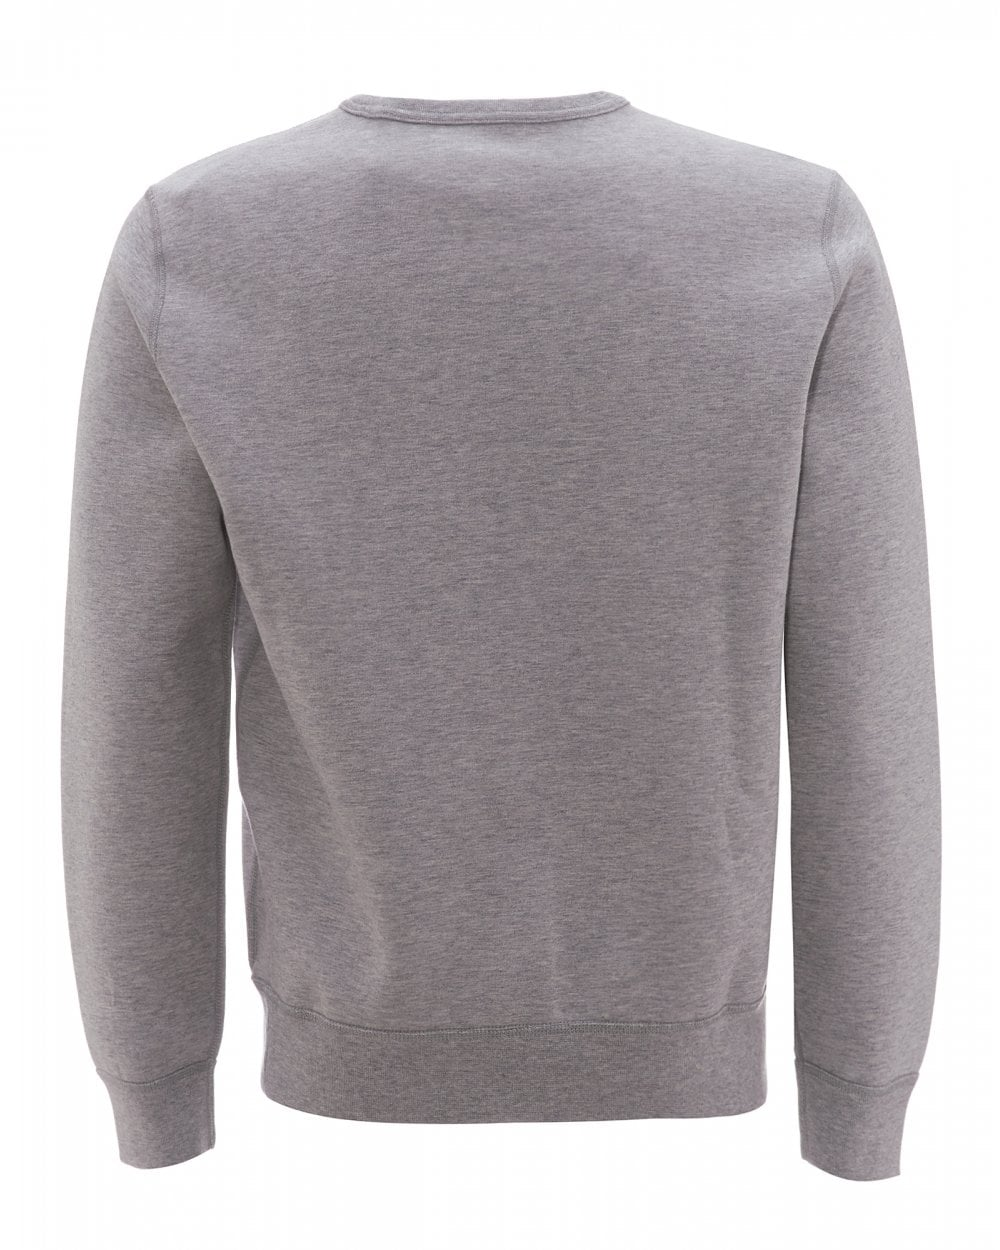 Polo Ralph Lauren Mens Big Pony Sweatshirt, Grey Sweat